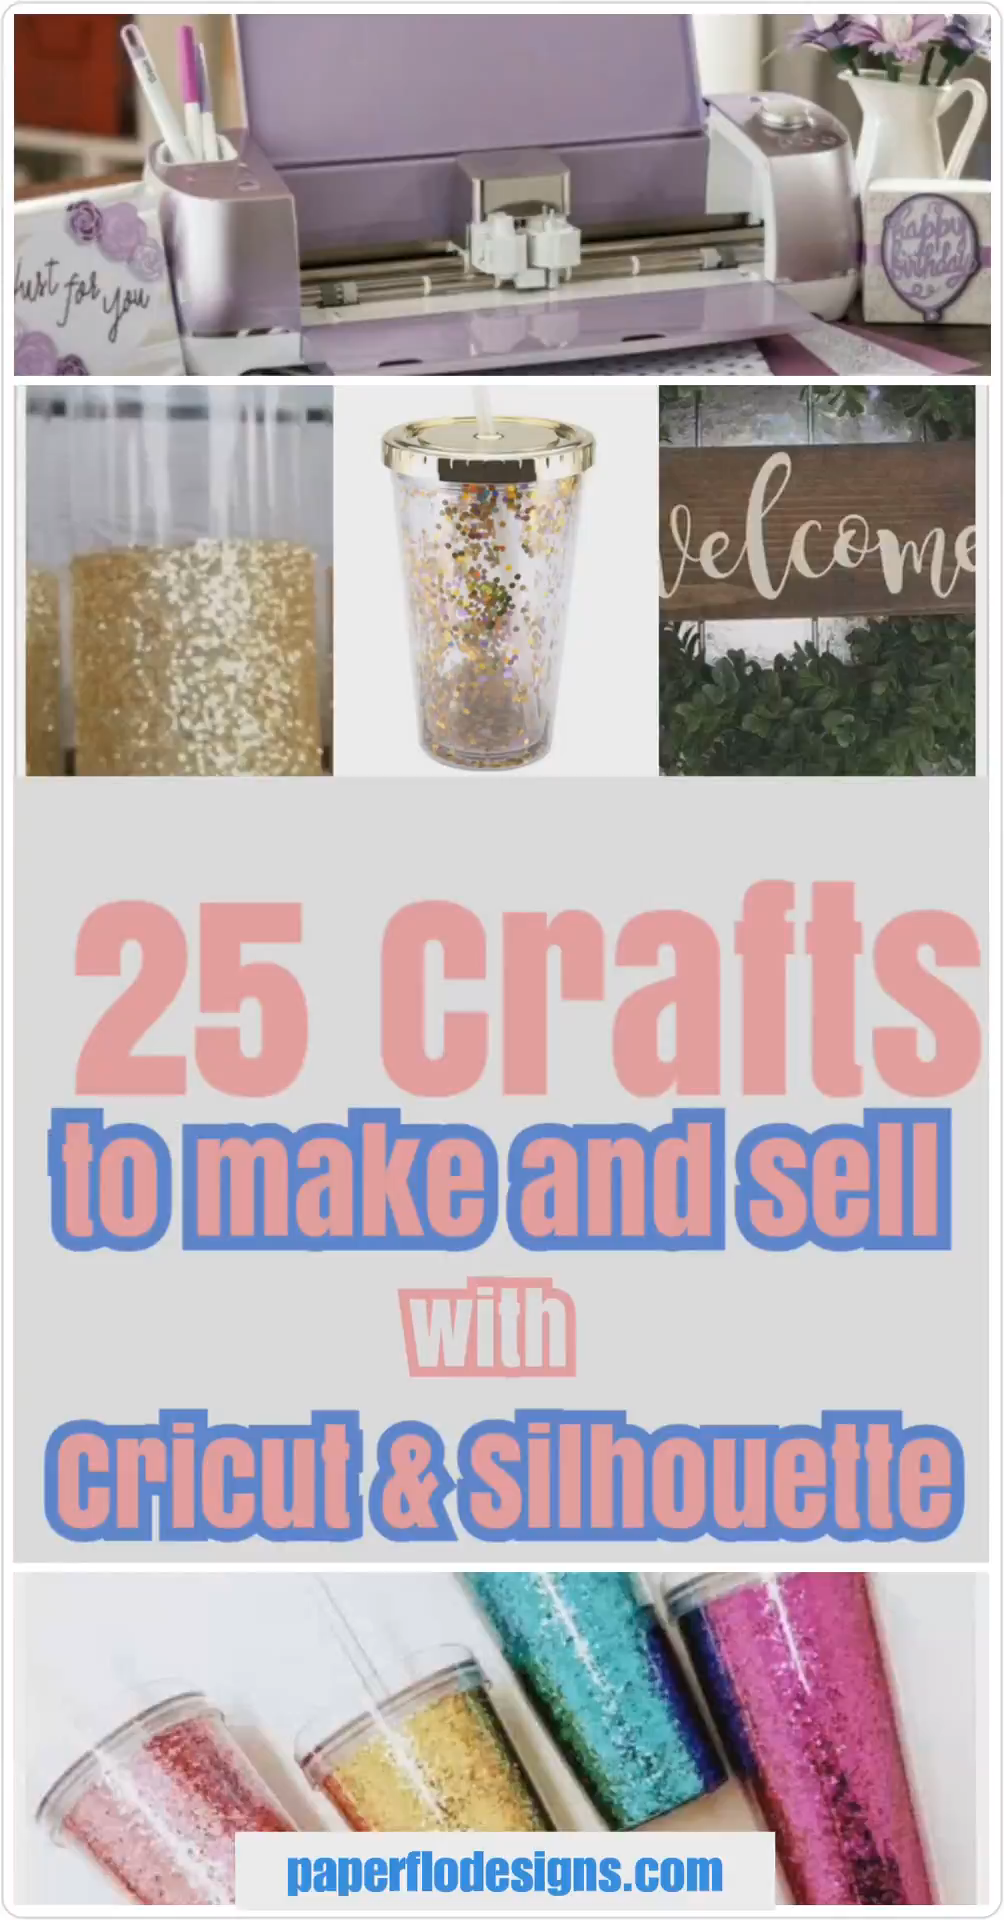 25 crafts to make and sell with Cricut and Silhouette